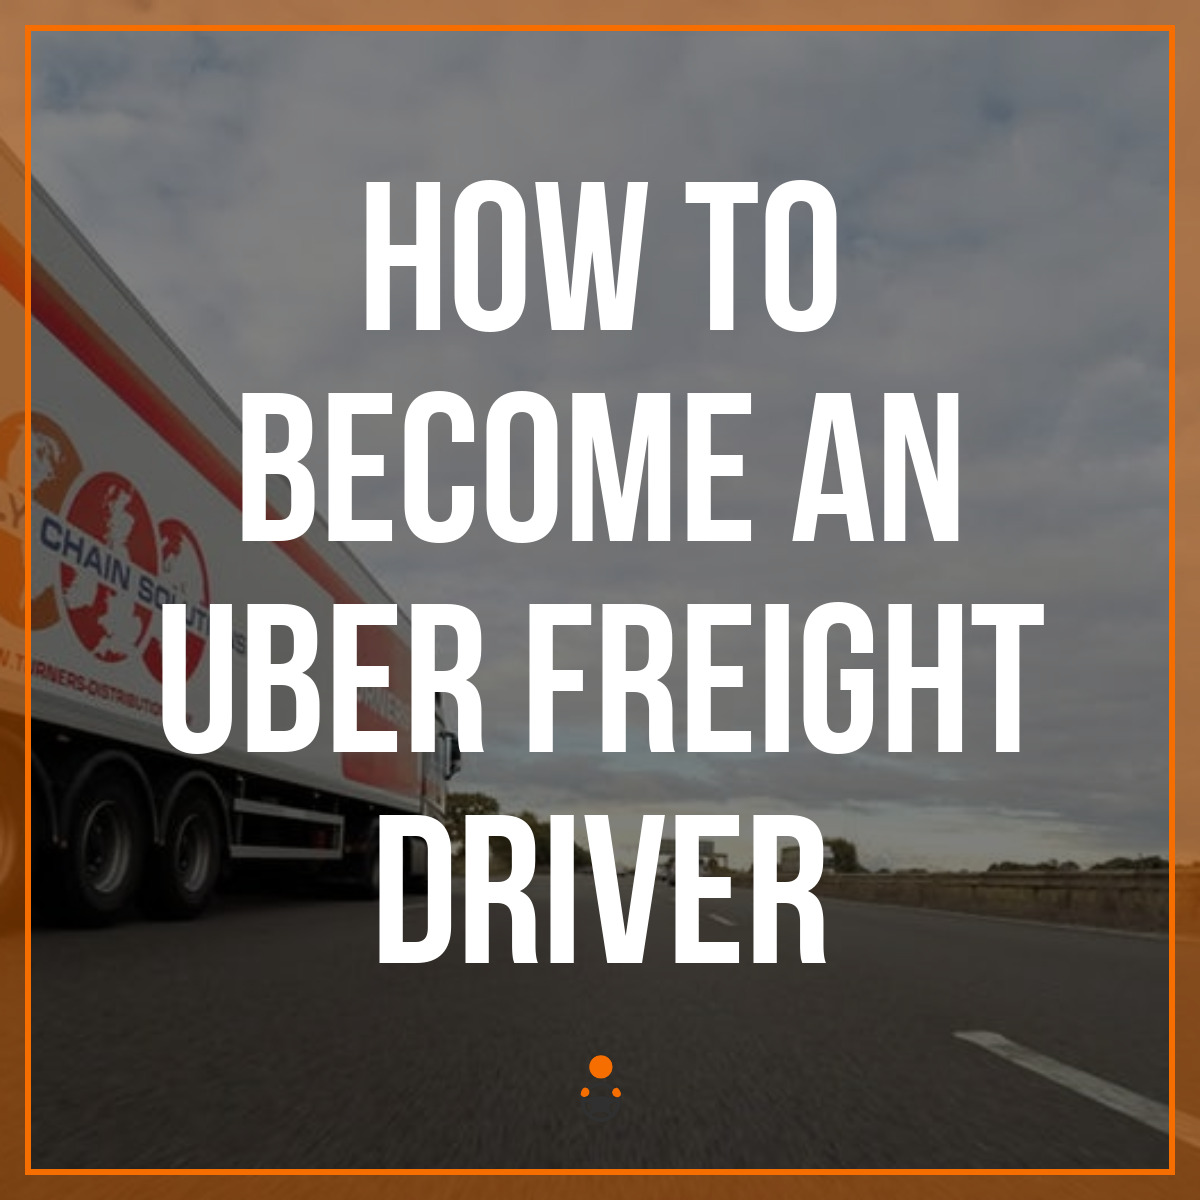 uber freight driver